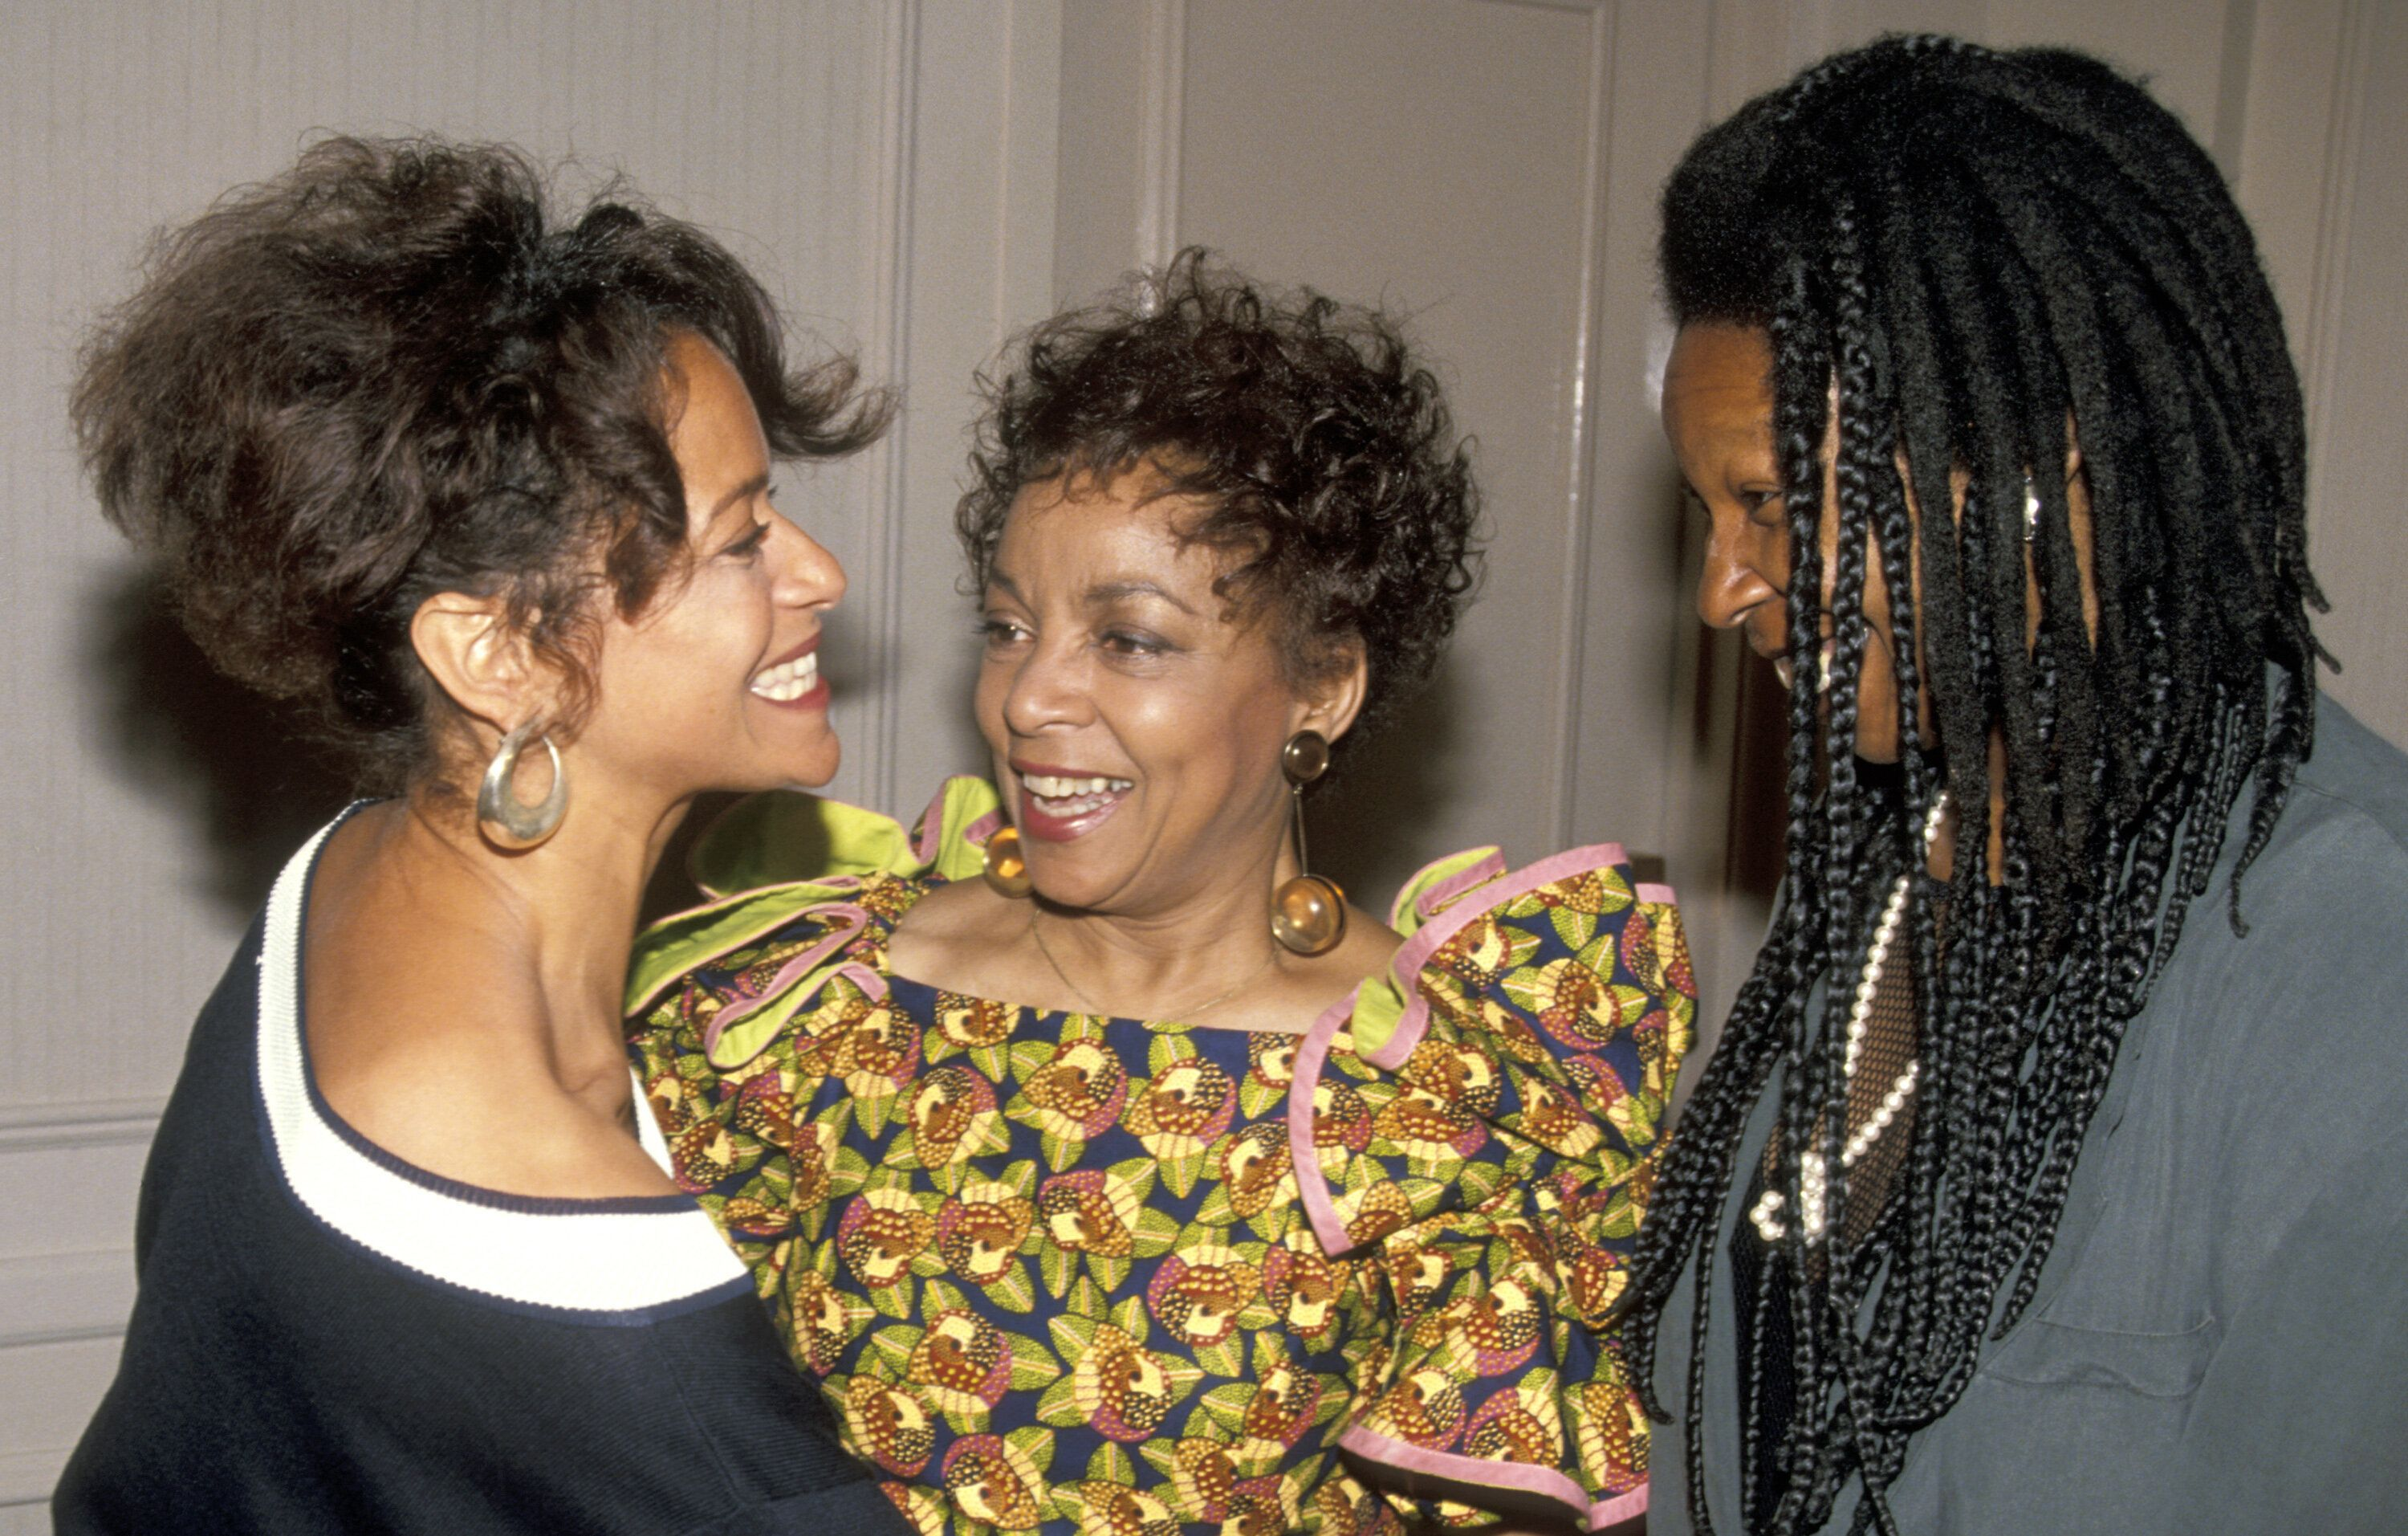 Allen, Ruby Dee and Whoopi Goldberg at the Women in Film awards on June 7, 1991.